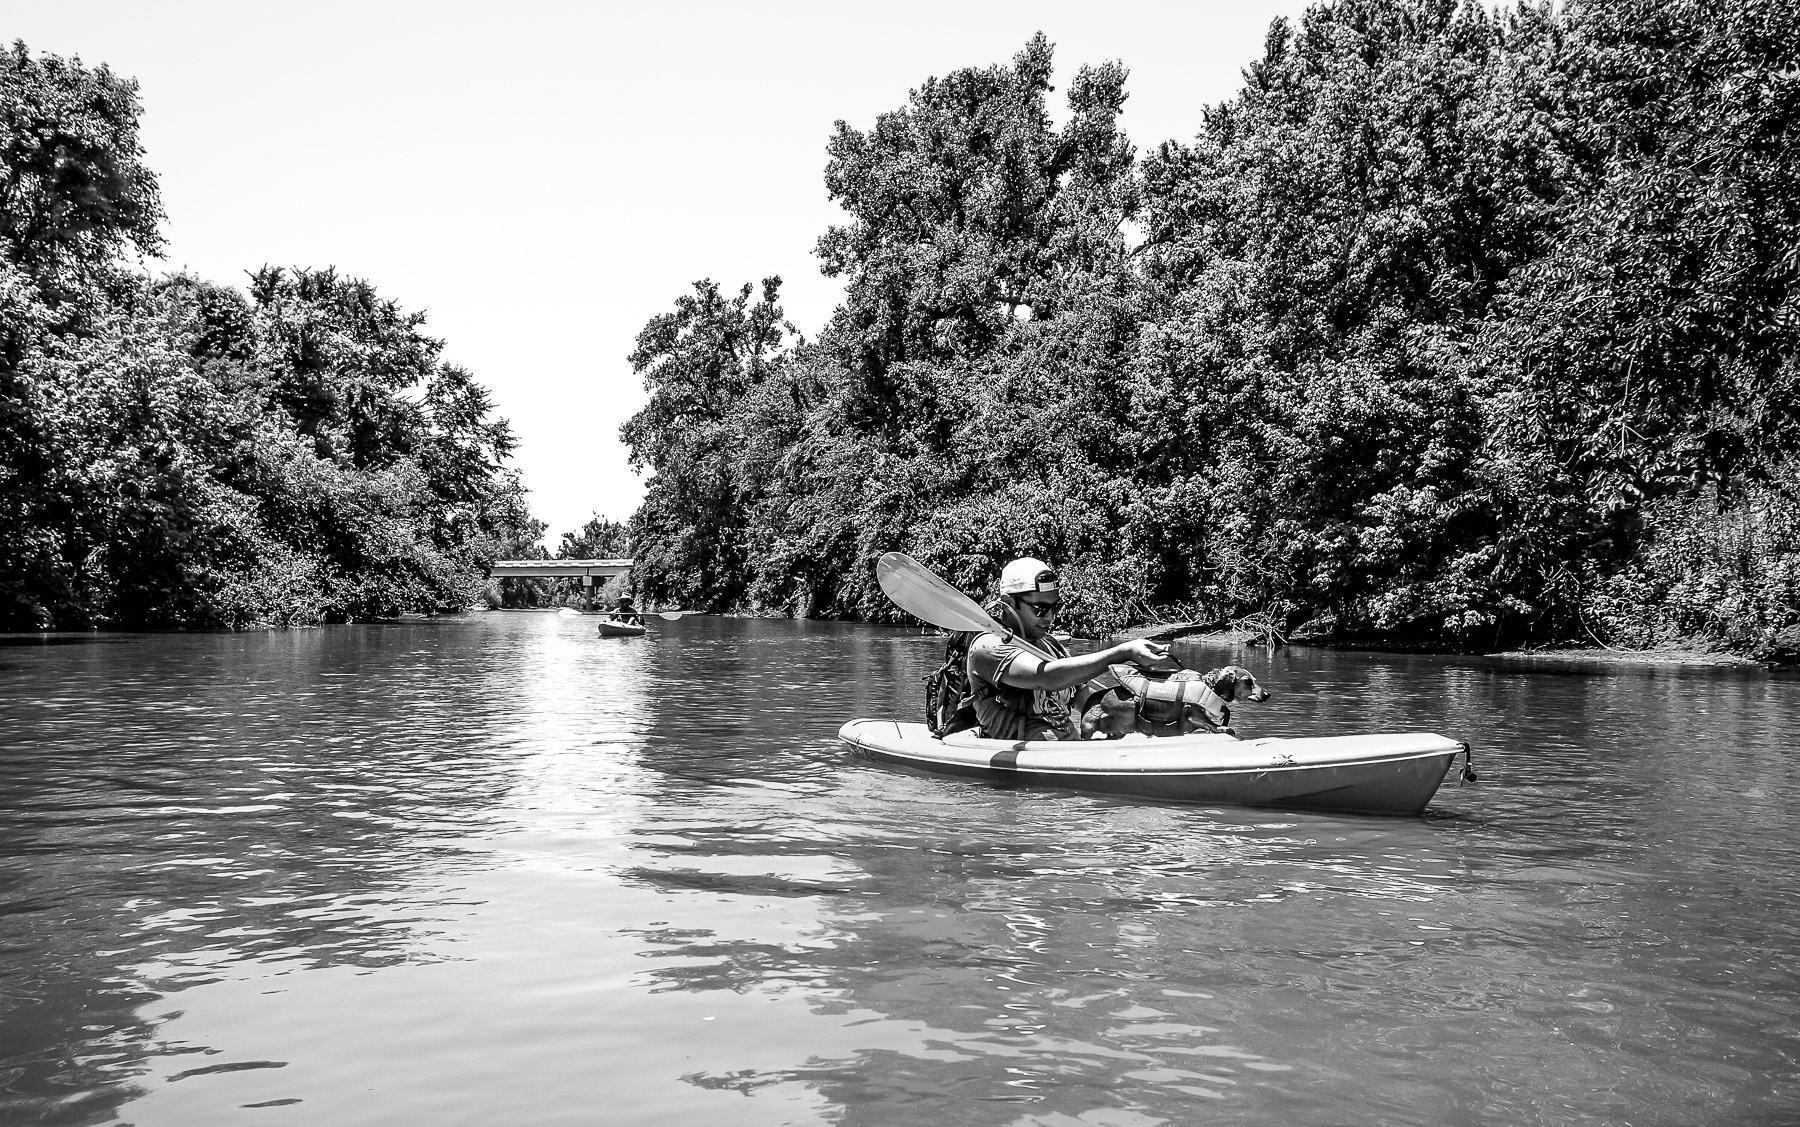 kaYaking 6-17-16 (1 of 15).jpg